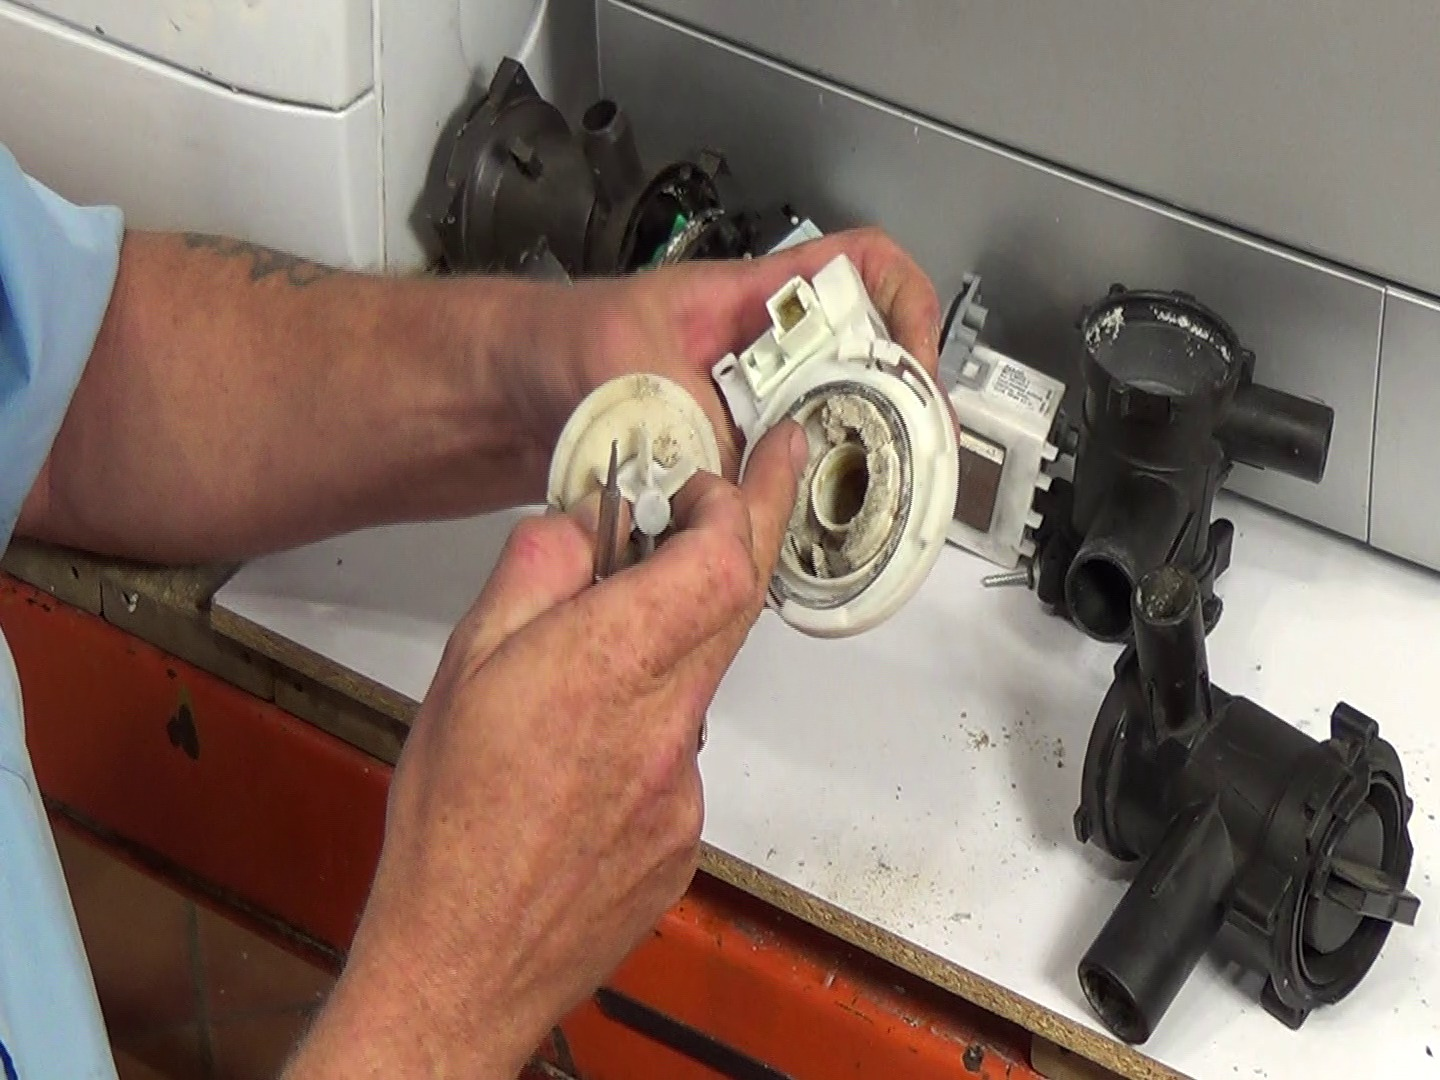 How to open Washing machine Pump Filter that is stuck or Jammed